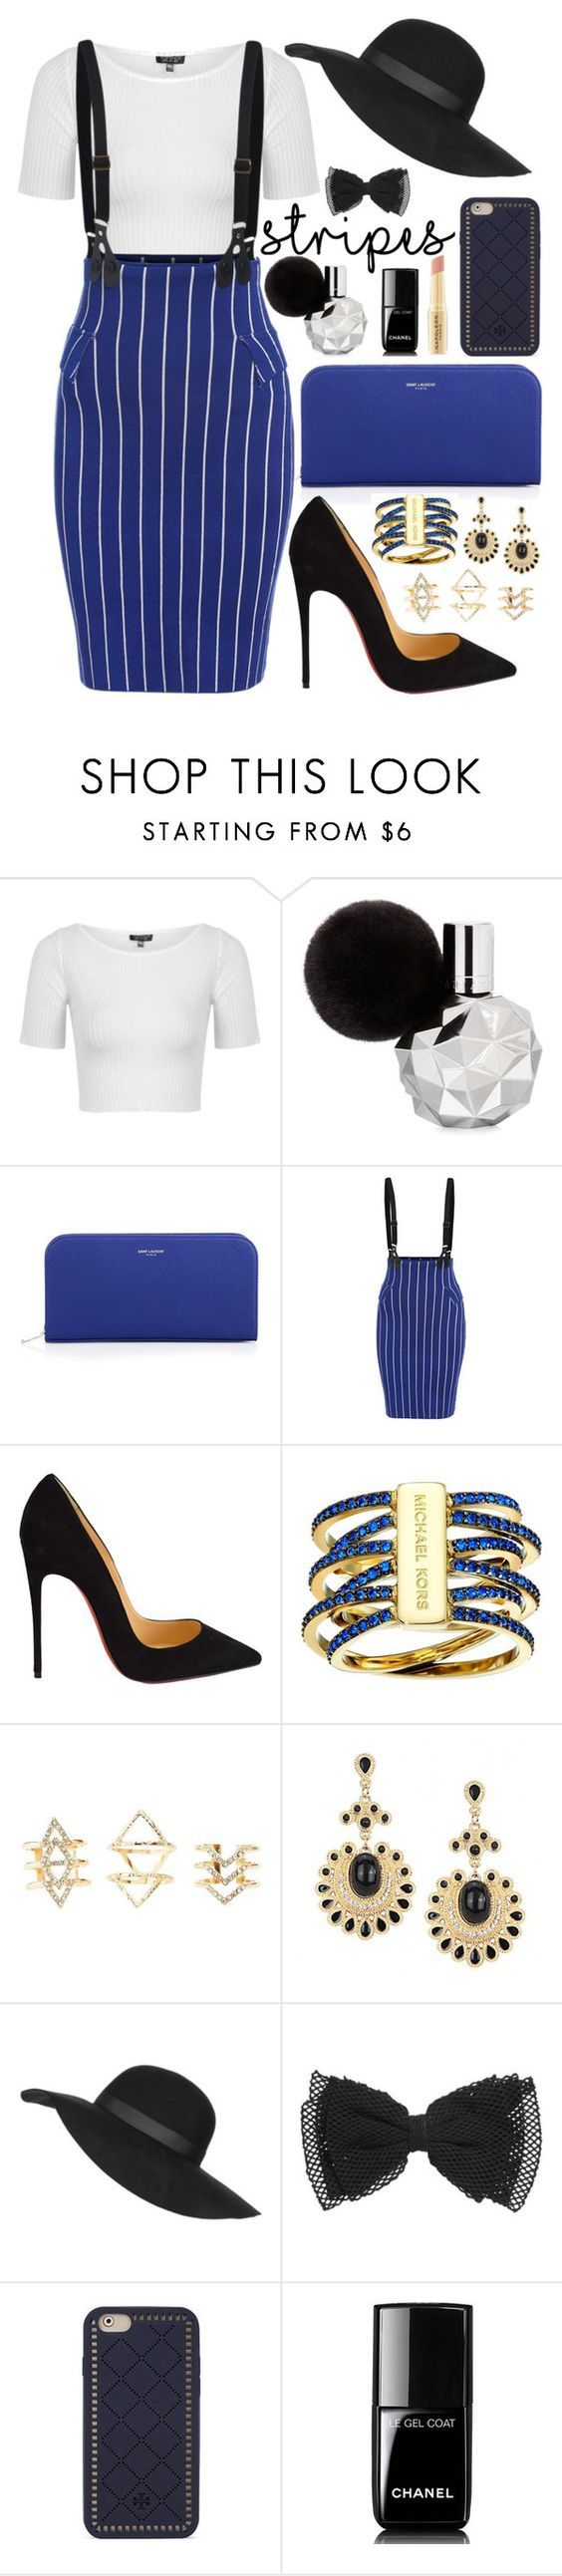 """""""He loves me with every beat of his cocaine heart"""" by dinosaurrawr ❤ liked on Polyvore featuring Topshop, Yves Saint Laurent, Christian Louboutin, Michael Kors, Charlotte Russe, Tory Burch, Chanel and Napoleon Perdis"""